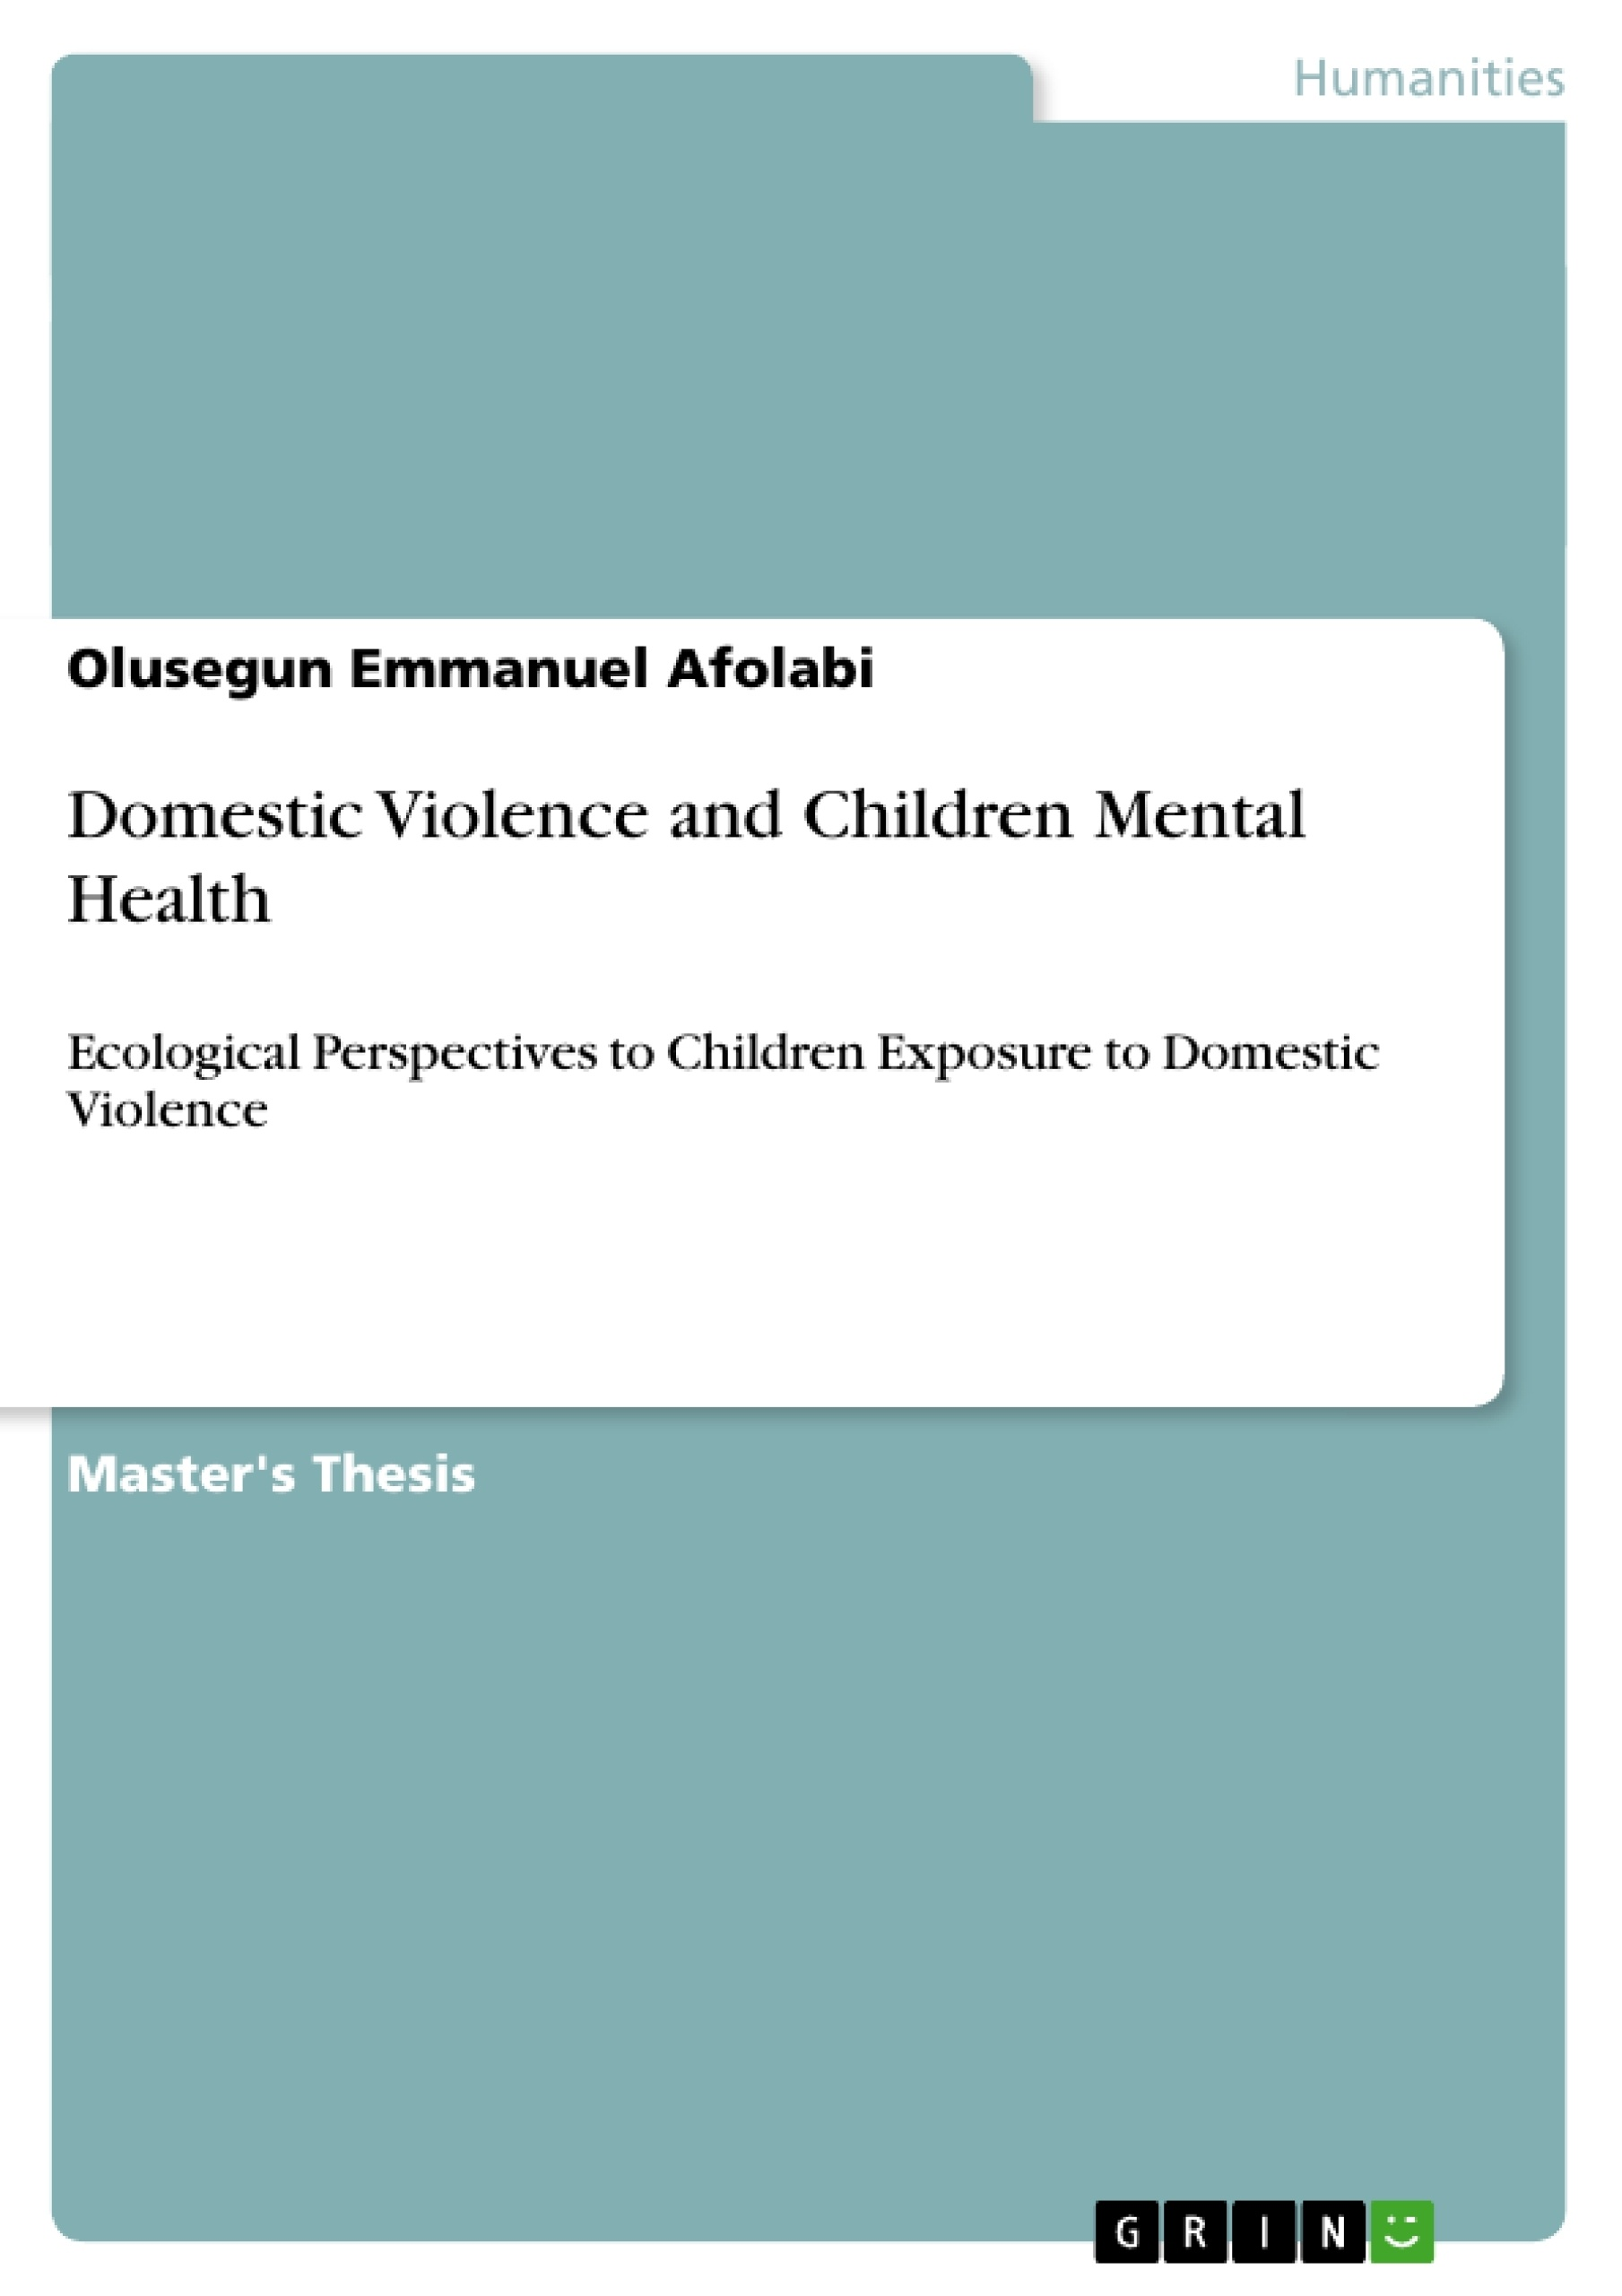 domestic violence and children mental health publish your  domestic violence and children mental health publish your master s thesis bachelor s thesis essay or term paper